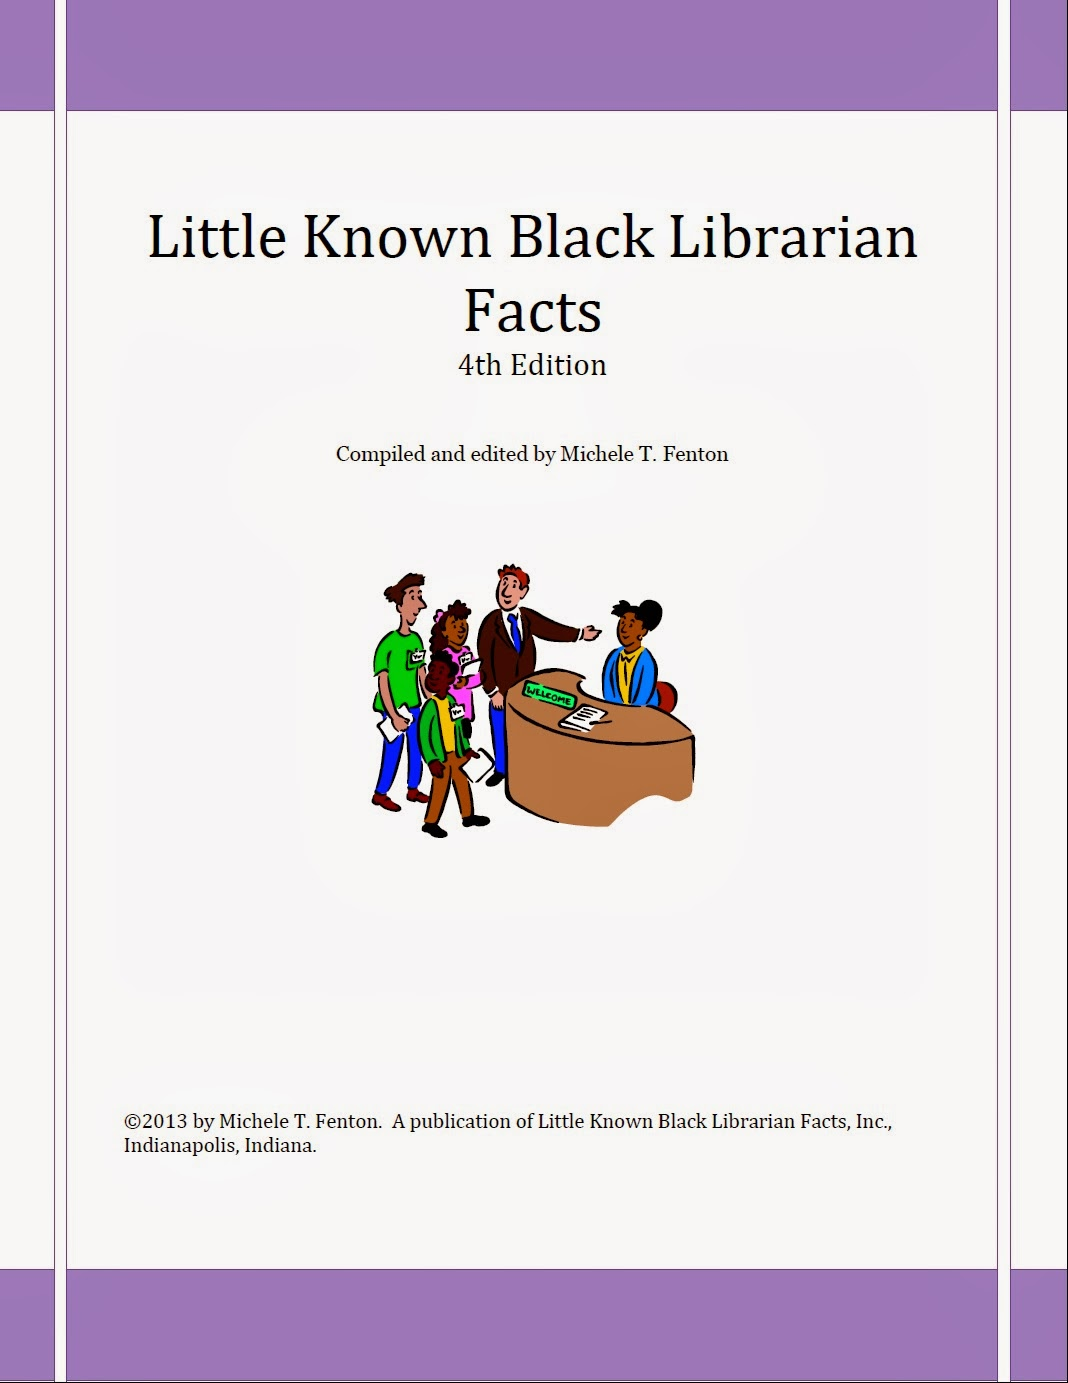 Little Known Black Librarian Facts - Fourth Edition (Click on Image to Access)